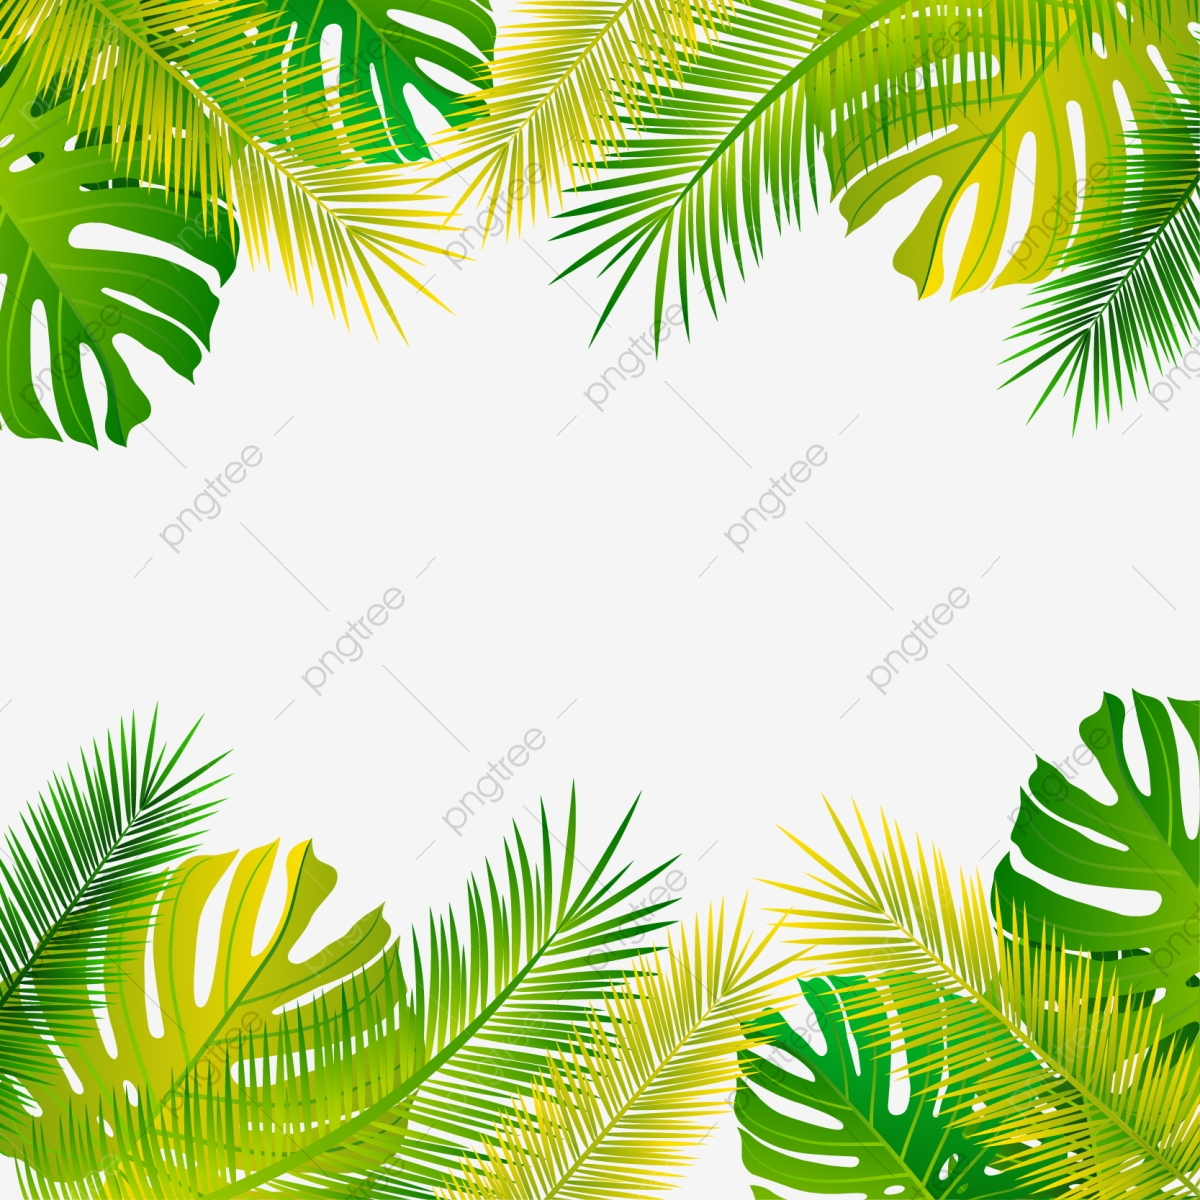 Tropical Leaves Png Images Vector And Psd Files Free Download On Pngtree Search for more beautiful pictures and free images on picjumbo! https pngtree com freepng forest tropical leaves and leaf plant palm frame 4863629 html